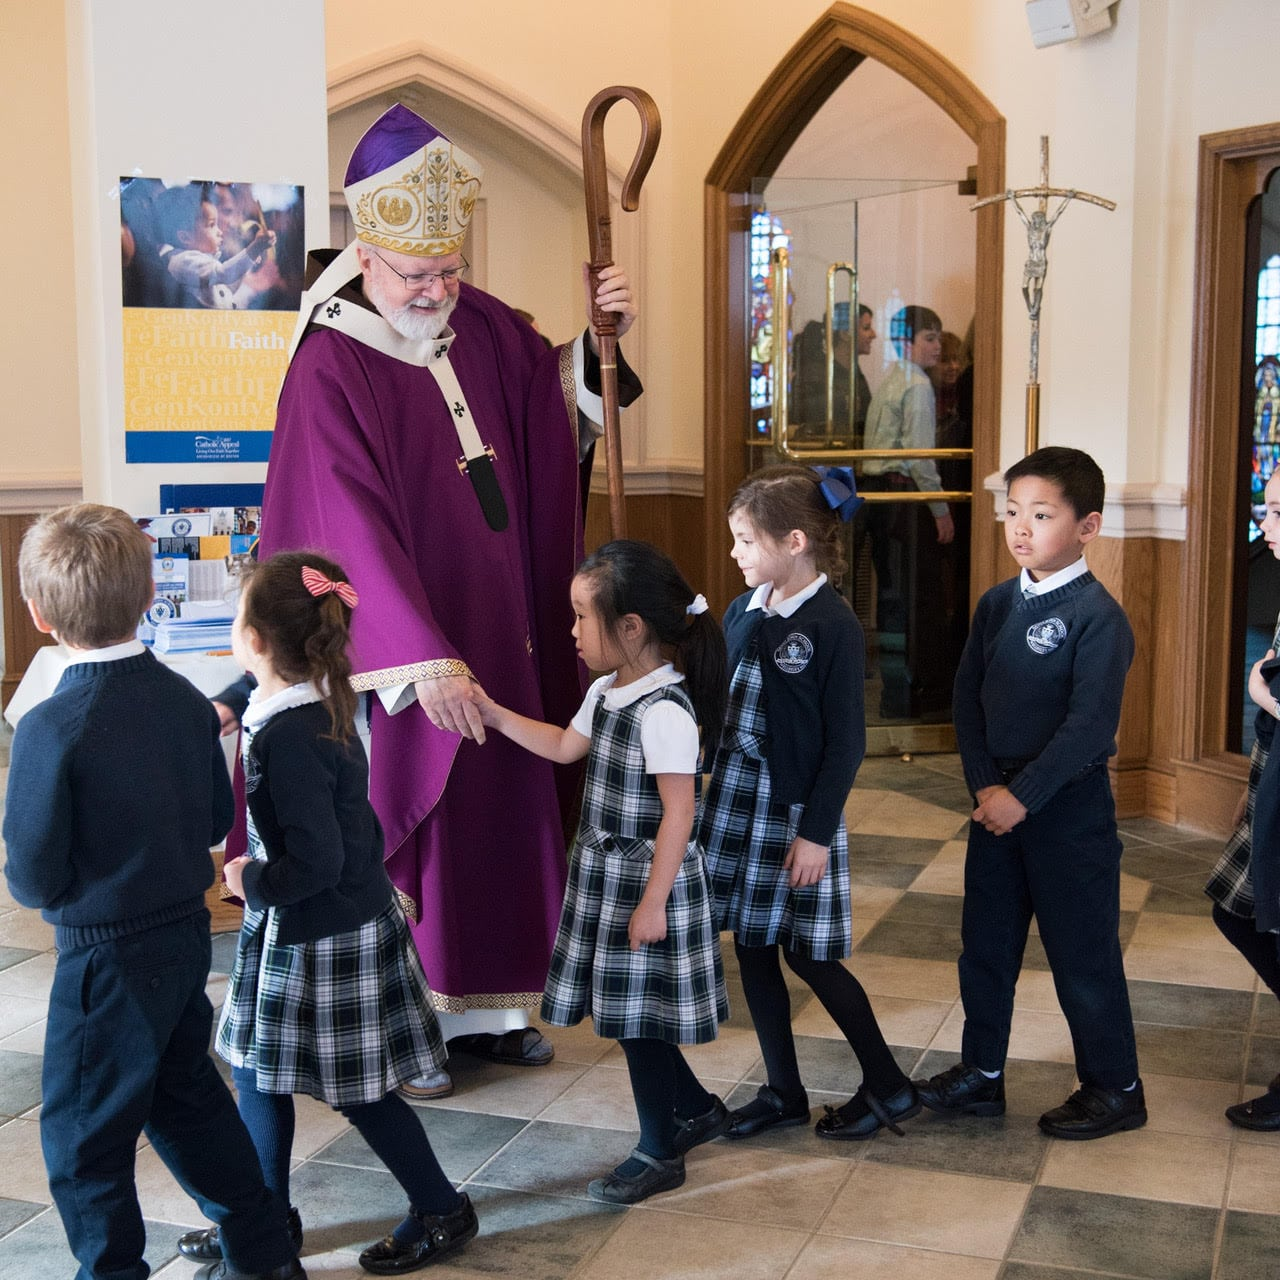 Cardinal O'Malley visits St. John School in Wellesley